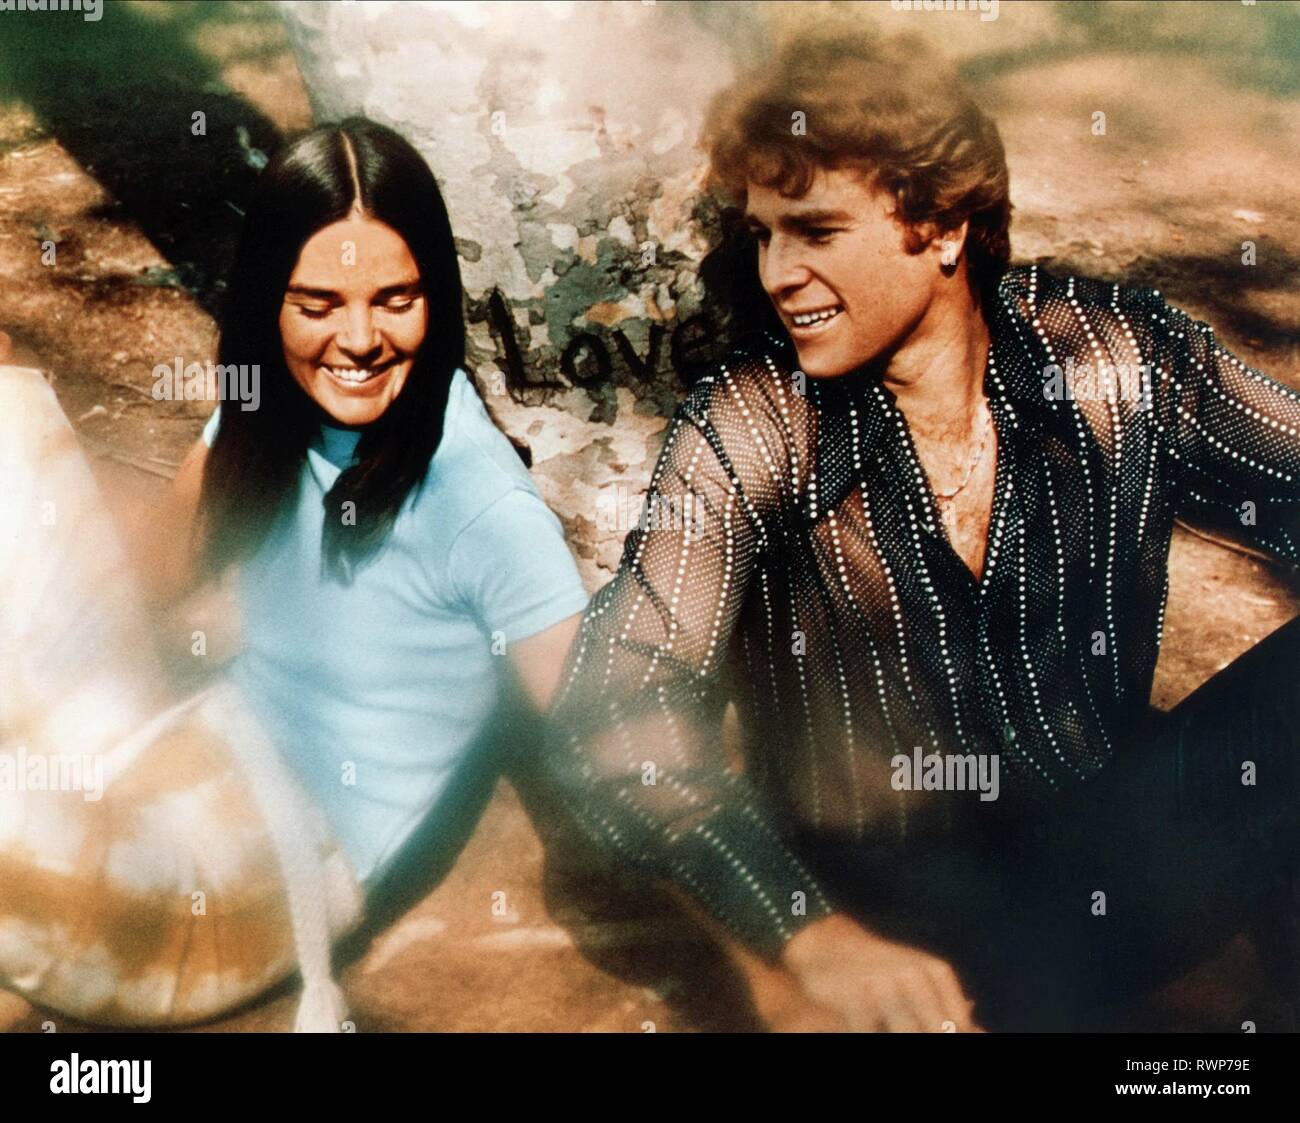 MACGRAW,O'NEAL, LOVE STORY, 1970 - Stock Image